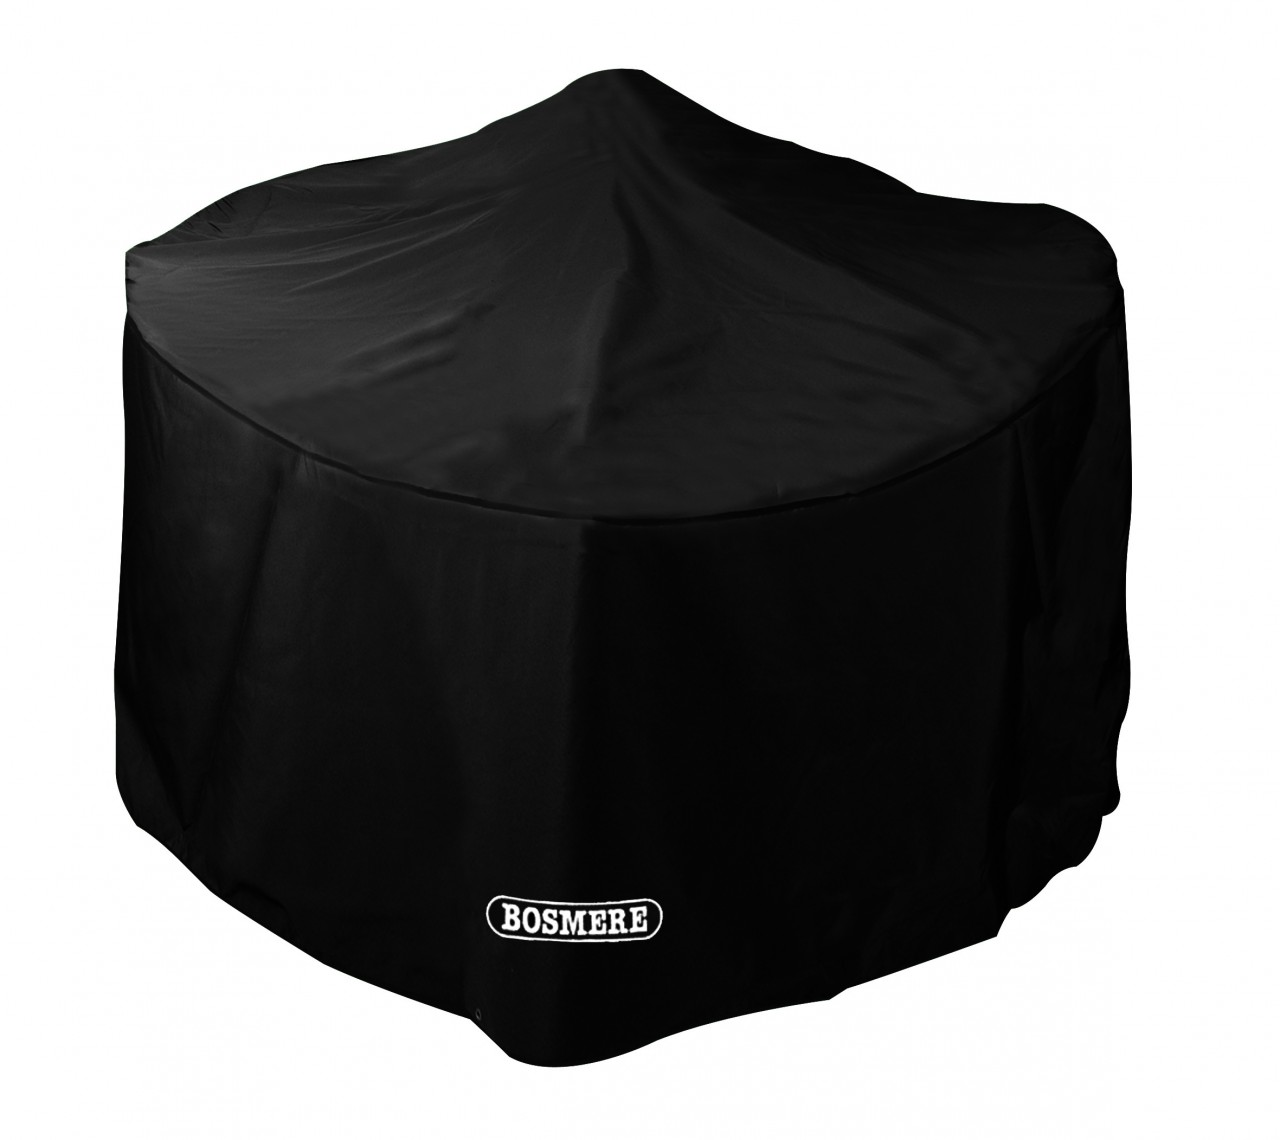 https://www.firstfurniture.co.uk/pub/media/catalog/product/D/7/D760_Small_Round_Fire_Pit_Cover_10238.jpg